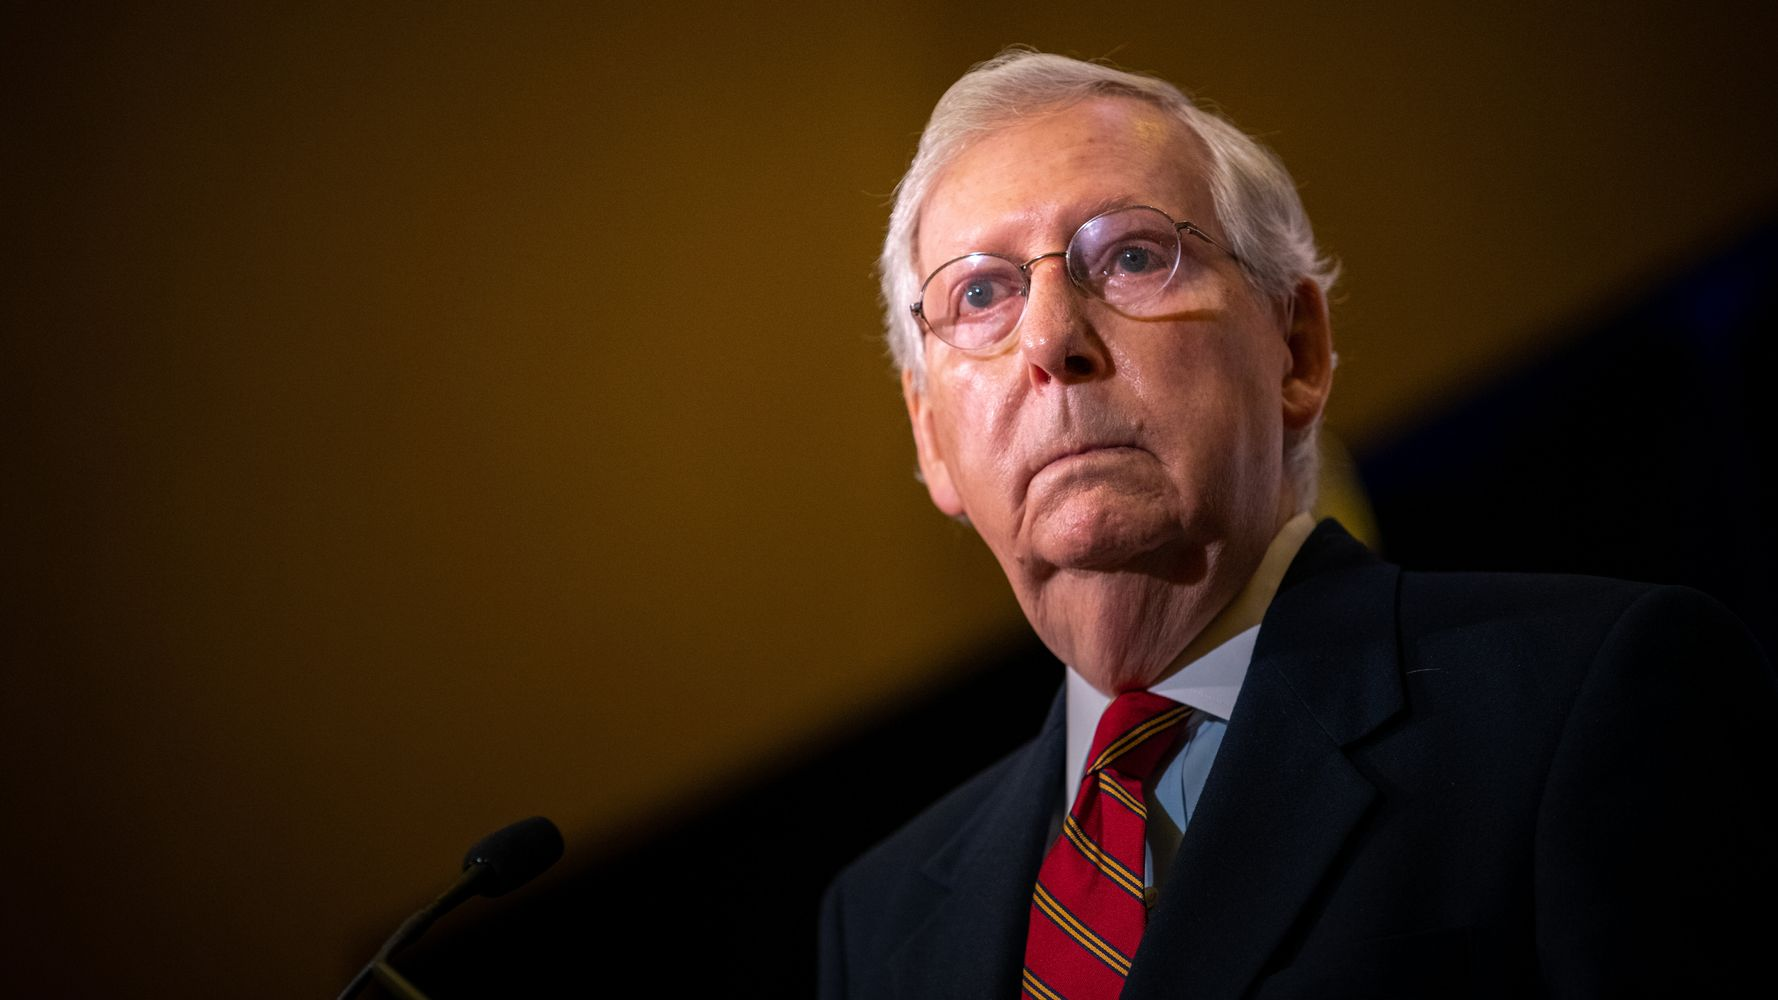 Mitch McConnell Says Trump Is '100% Within His Rights' To Challenge Election